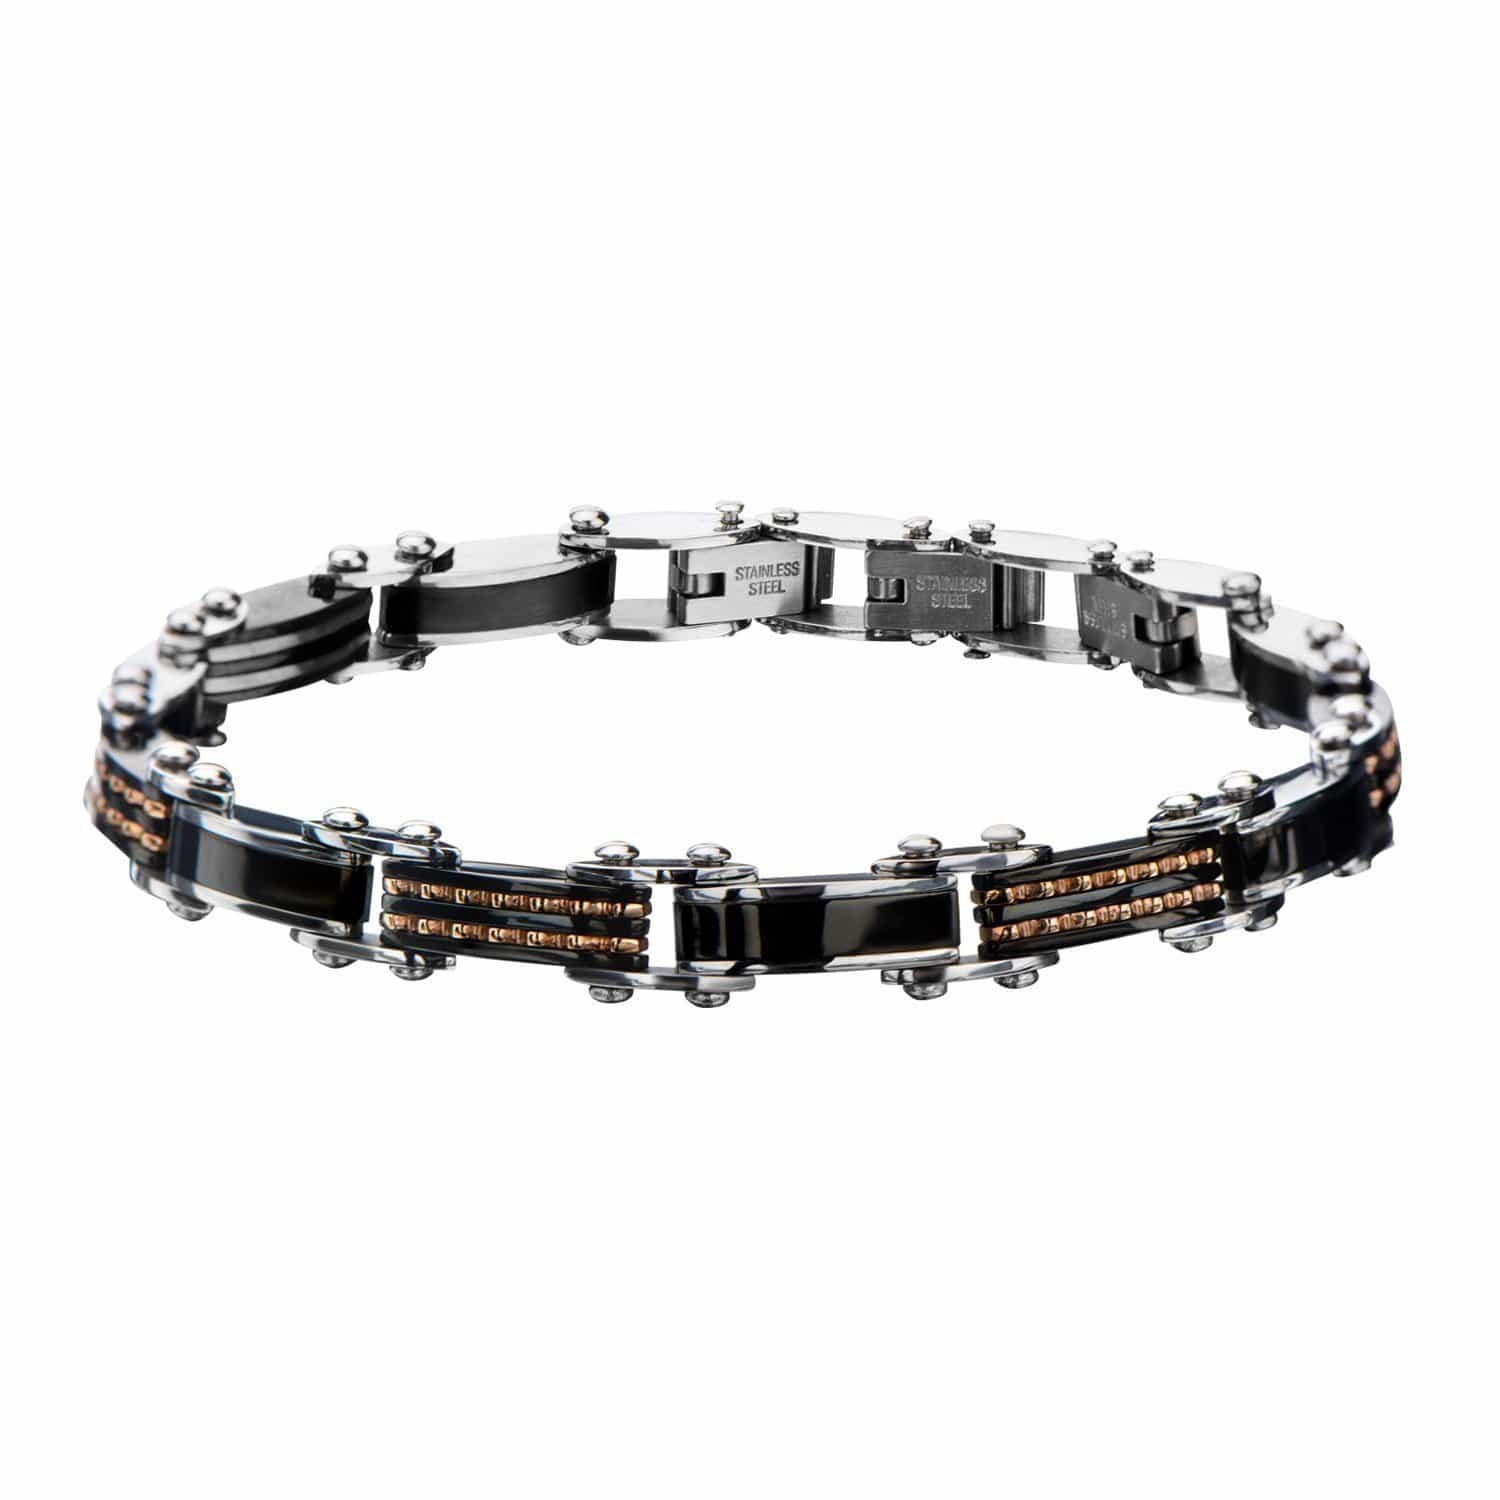 Rose Gold, Black & Silver Stainless Steel Reversible Stripe/Bead Bracelet - Inox Jewelry India